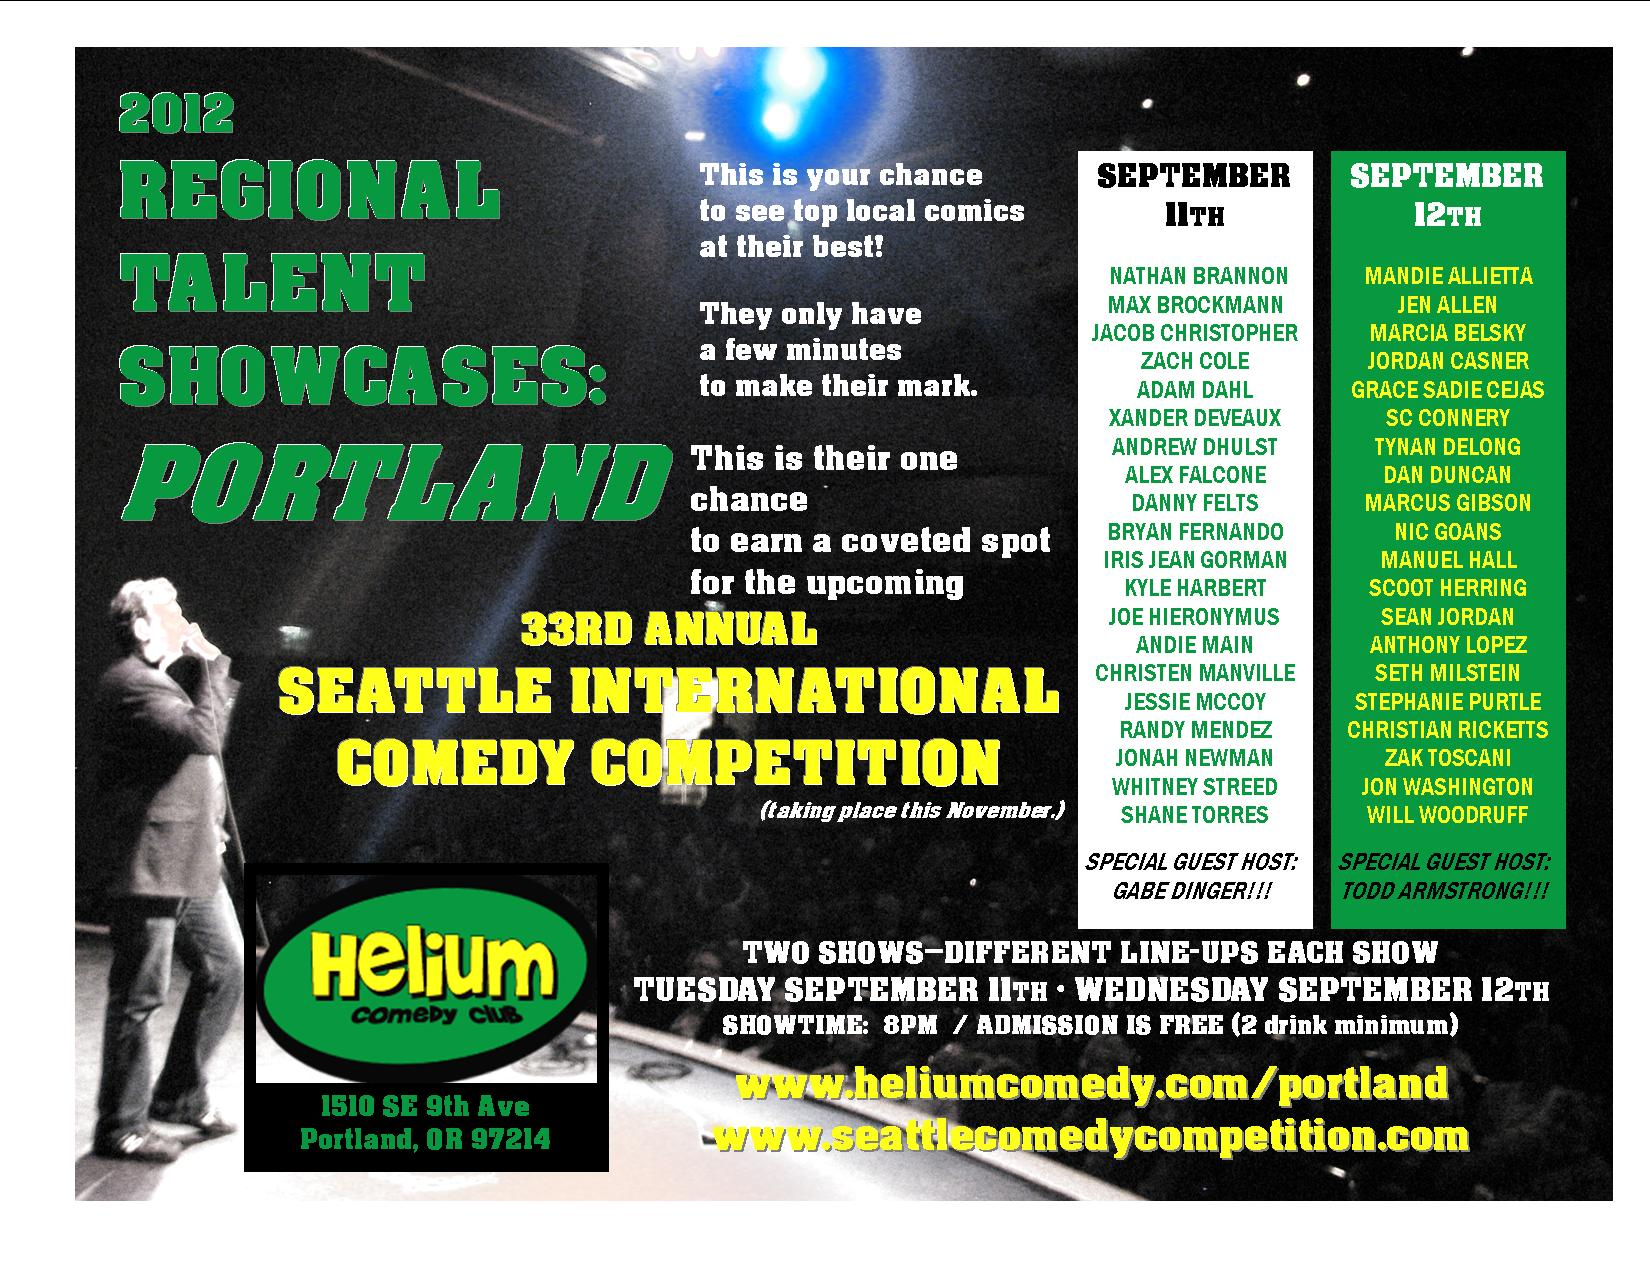 Poster for 2012 Regional Talent Showcases in Portland